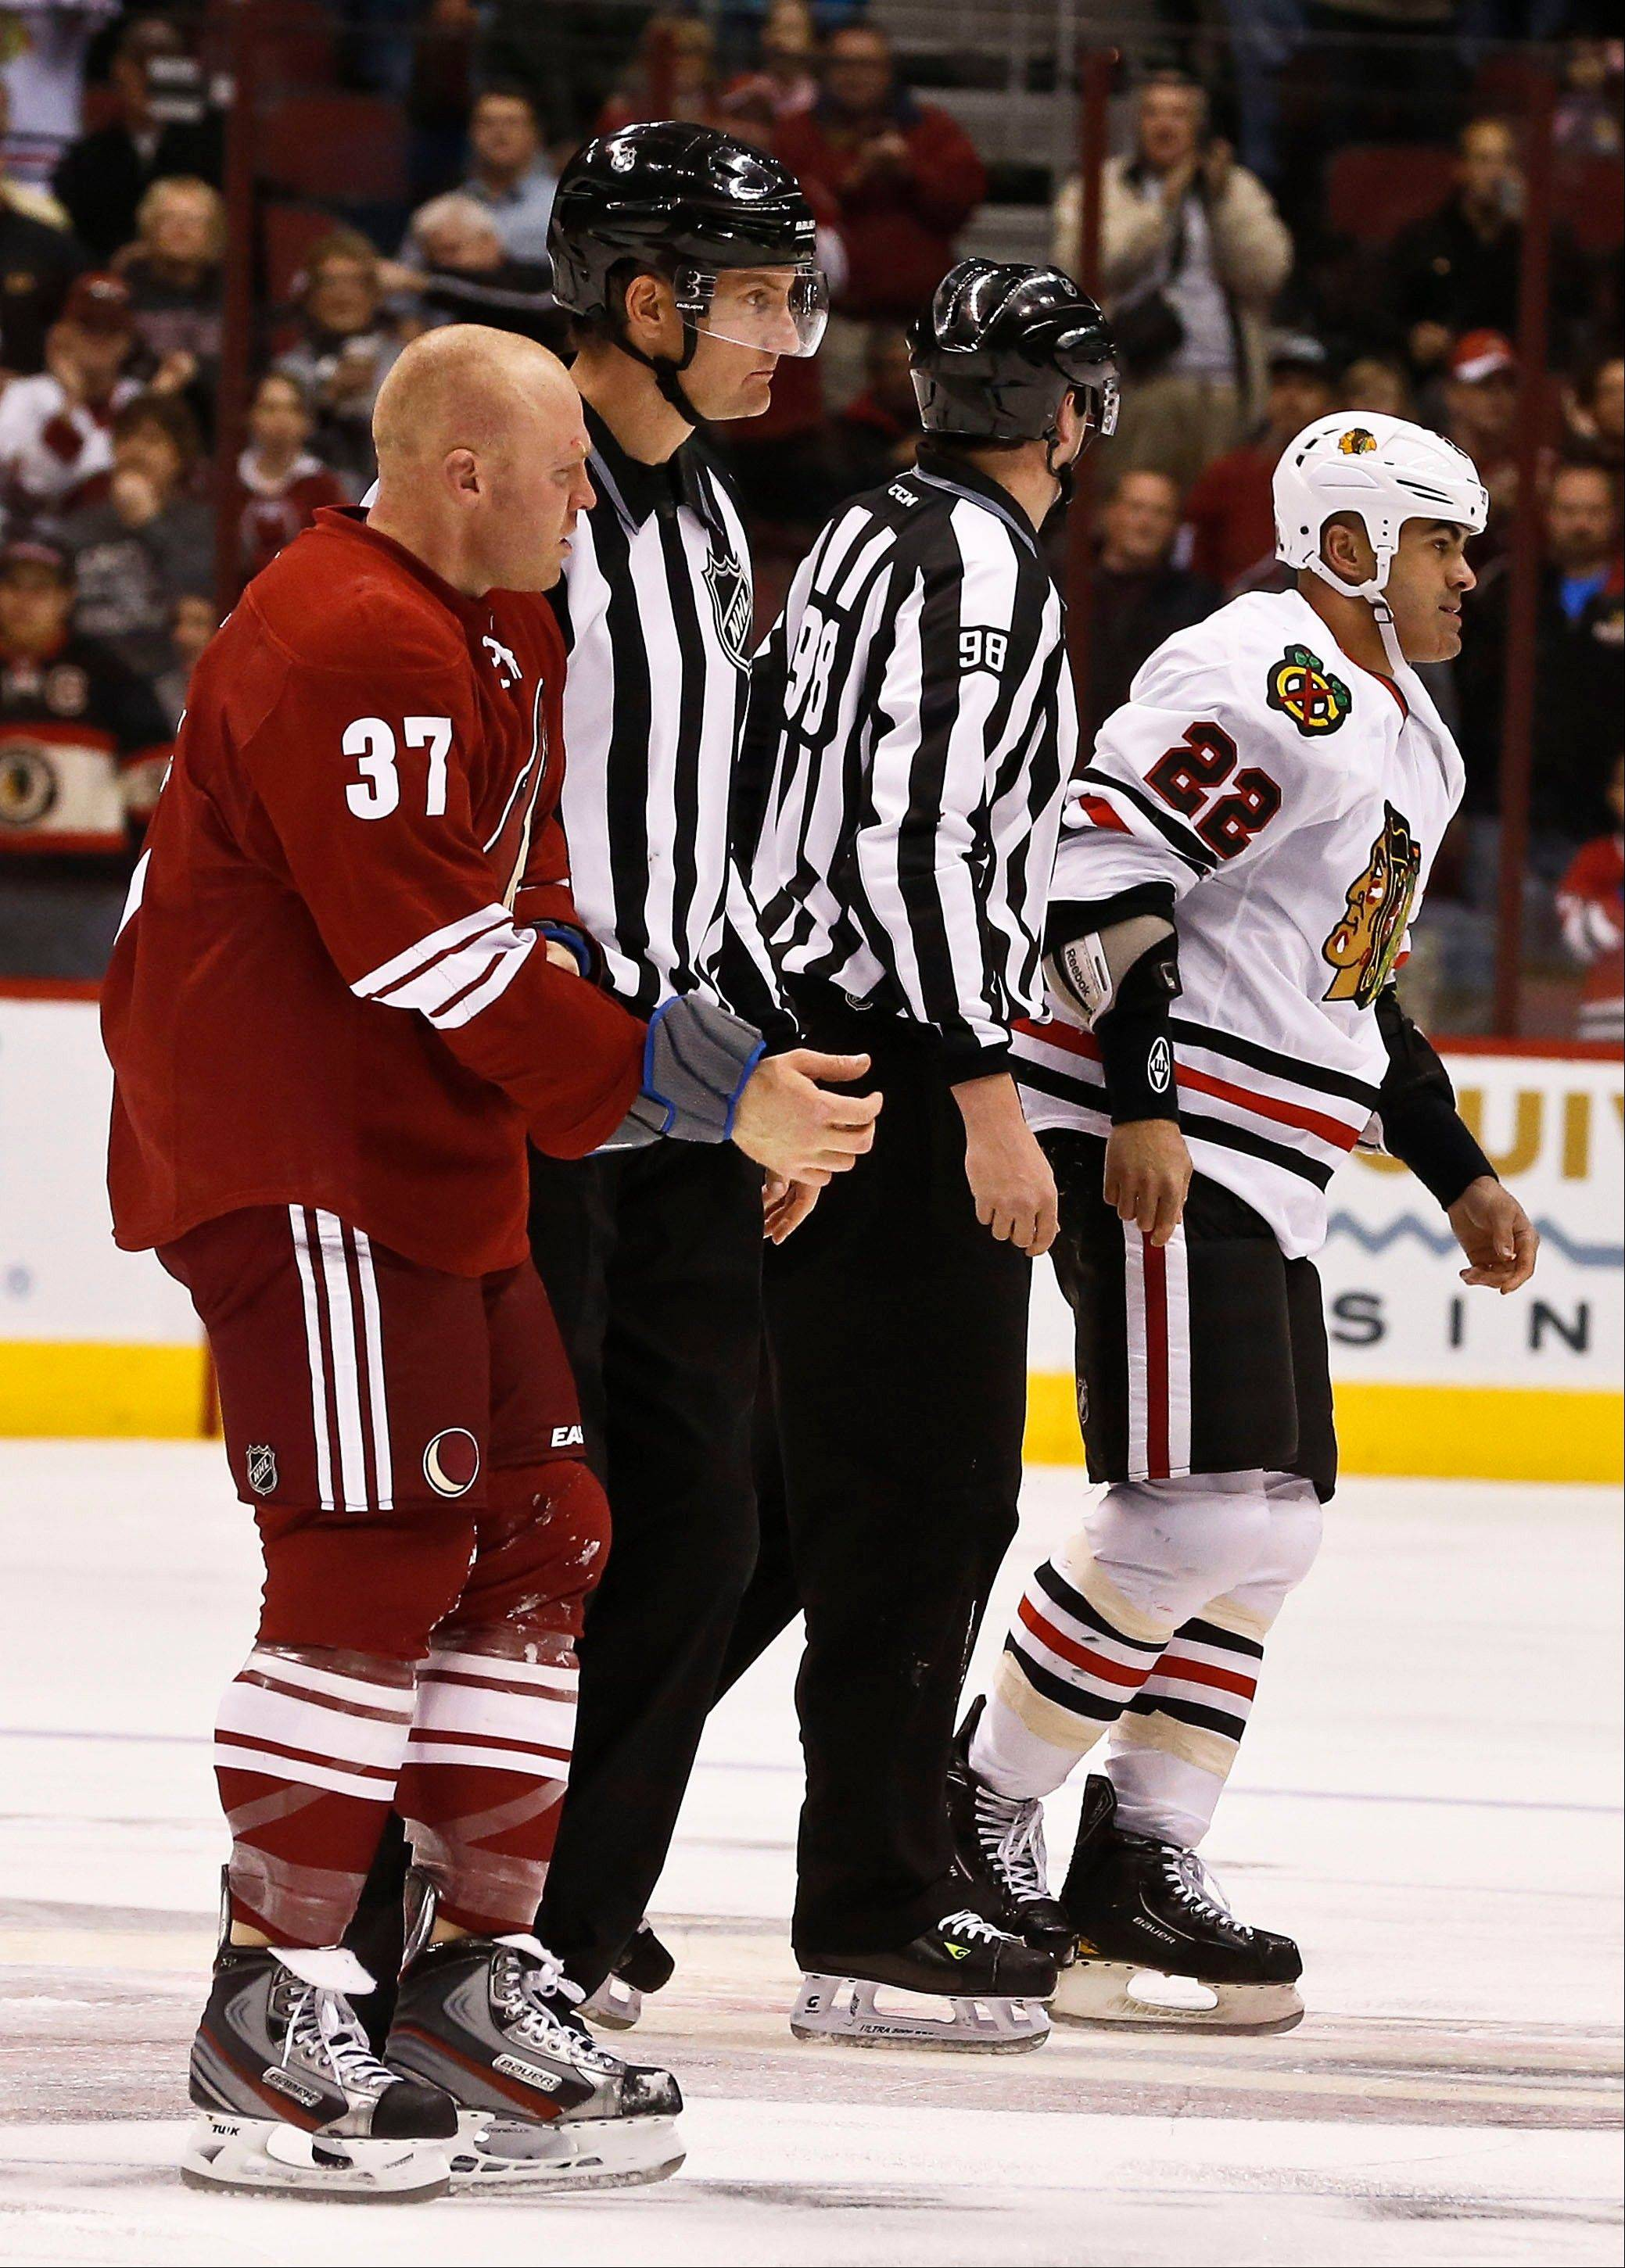 Phoenix Coyotes' Raffi Torres and Jamal Mayers are taken to the penalty box by linesmen John Grandt (98) and Shane Heyer after their first period fight Thursday.